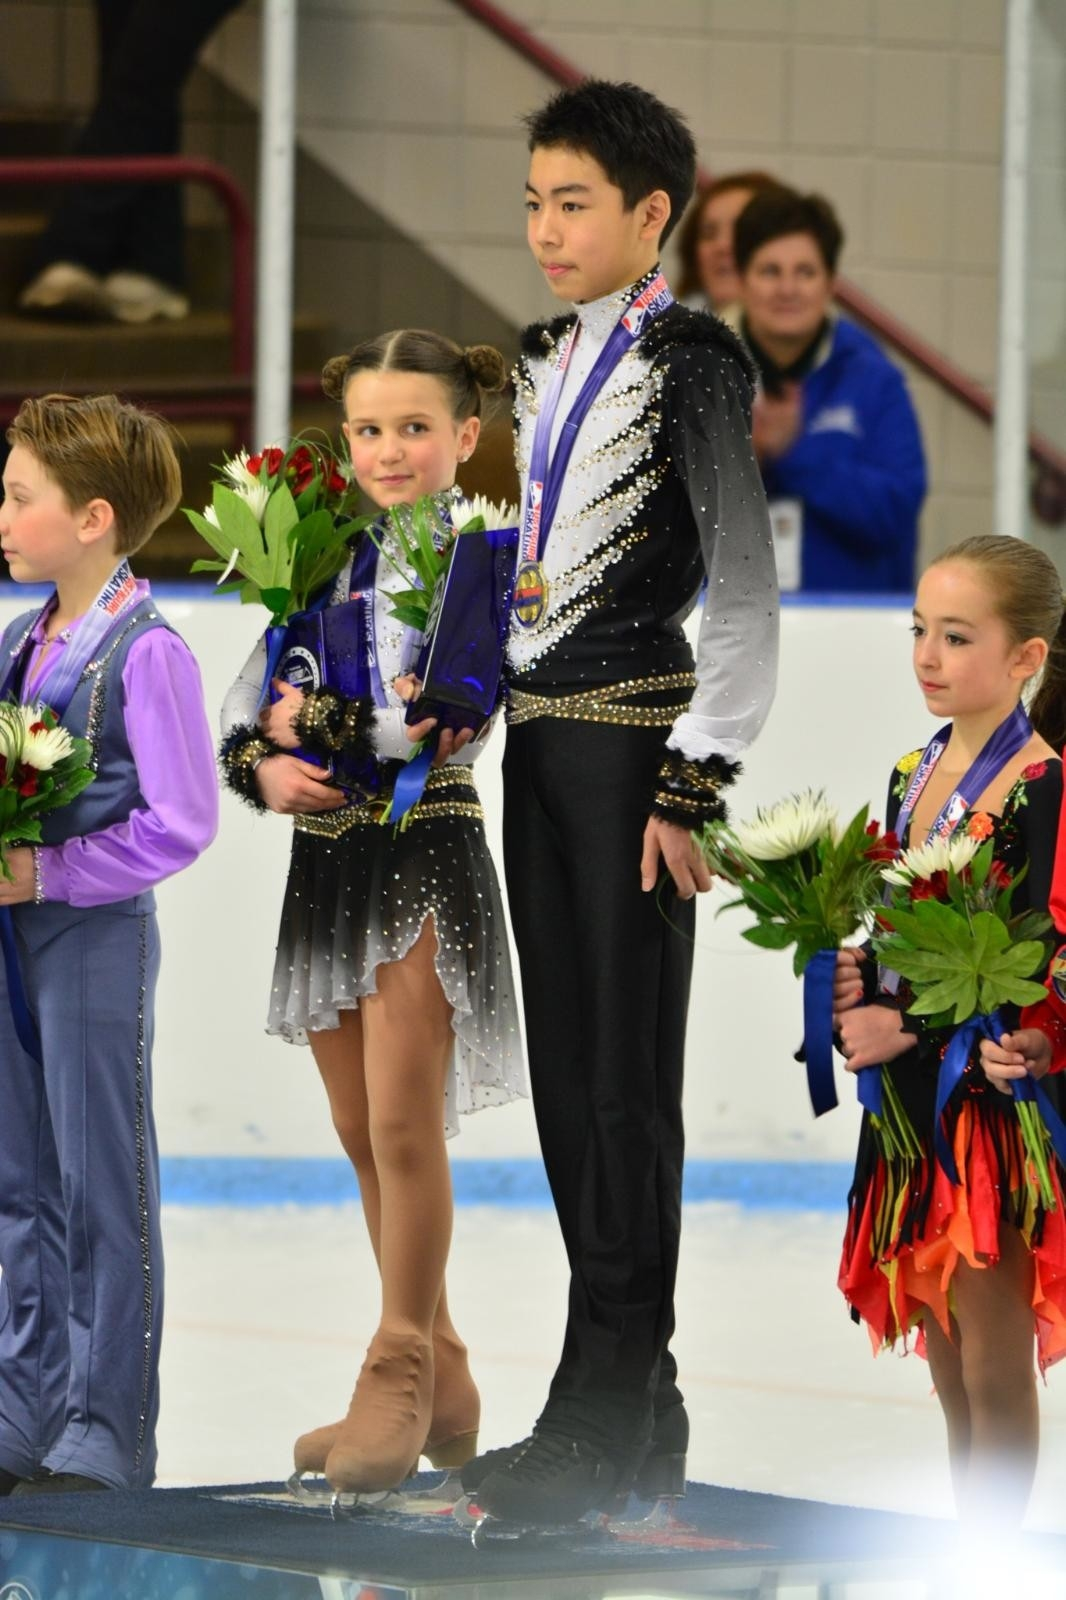 On the podium, U.S. Championship